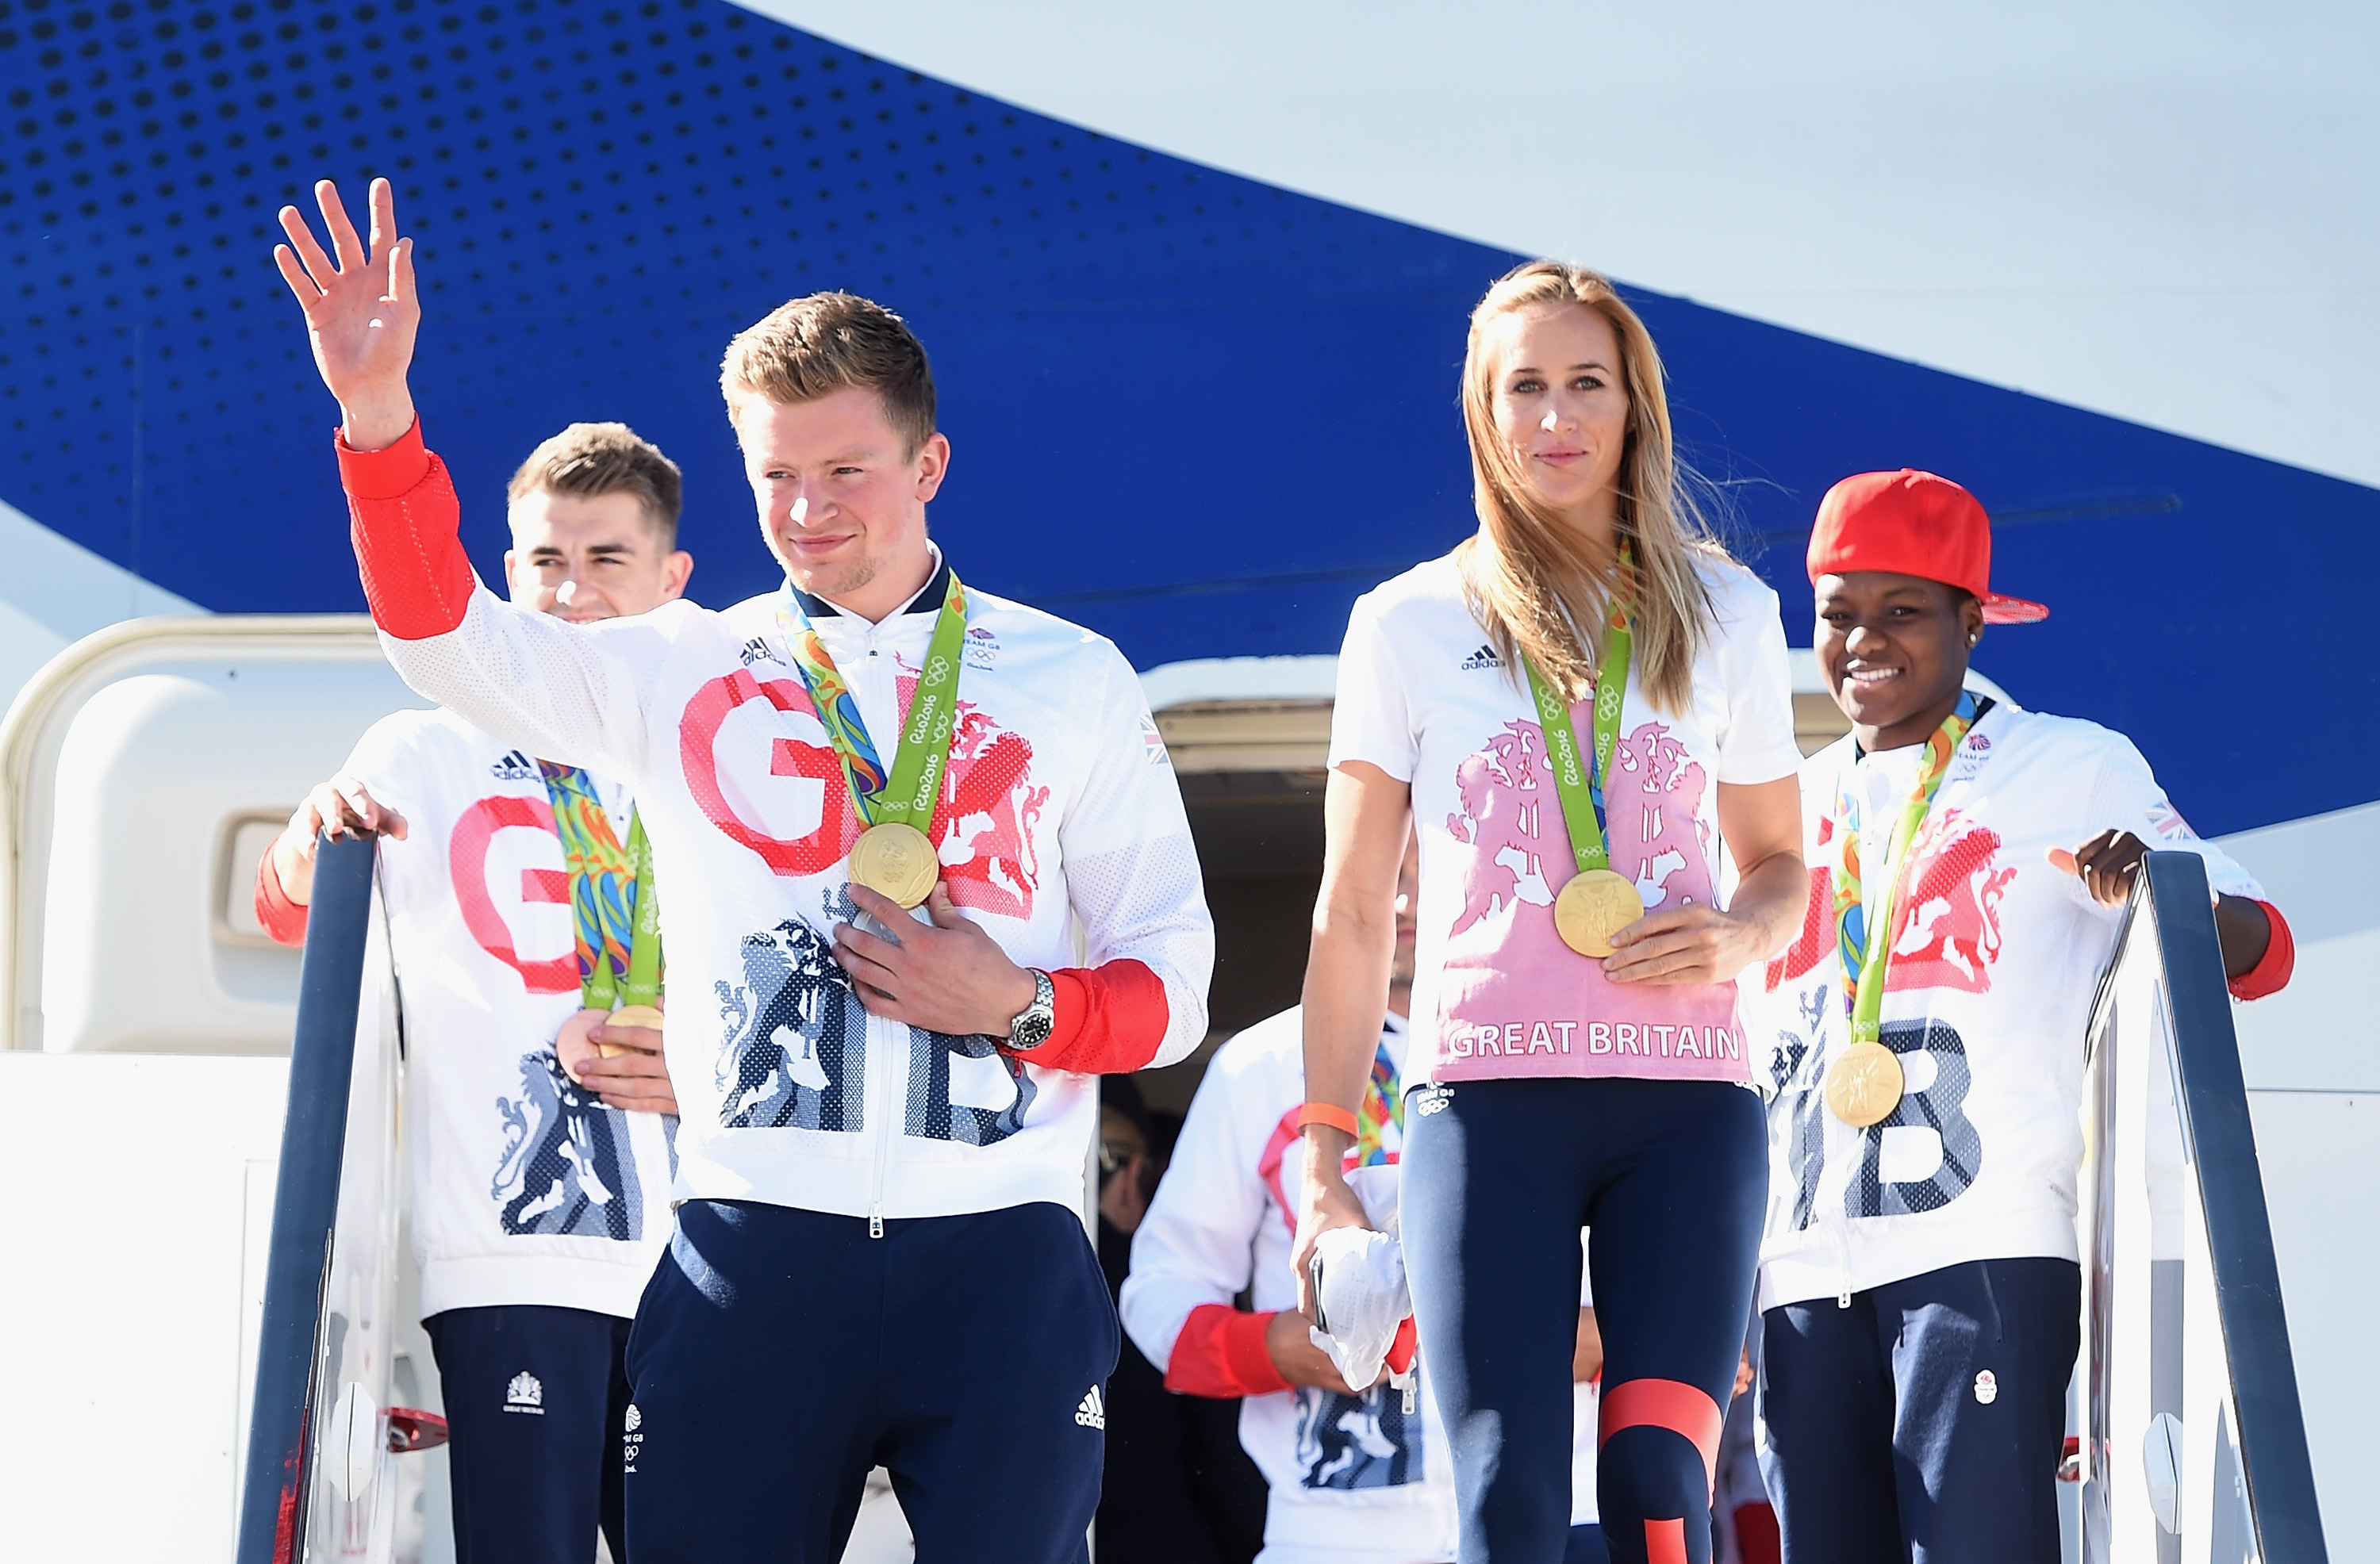 Team GB Olympic celebration parade dates and cities confirmed